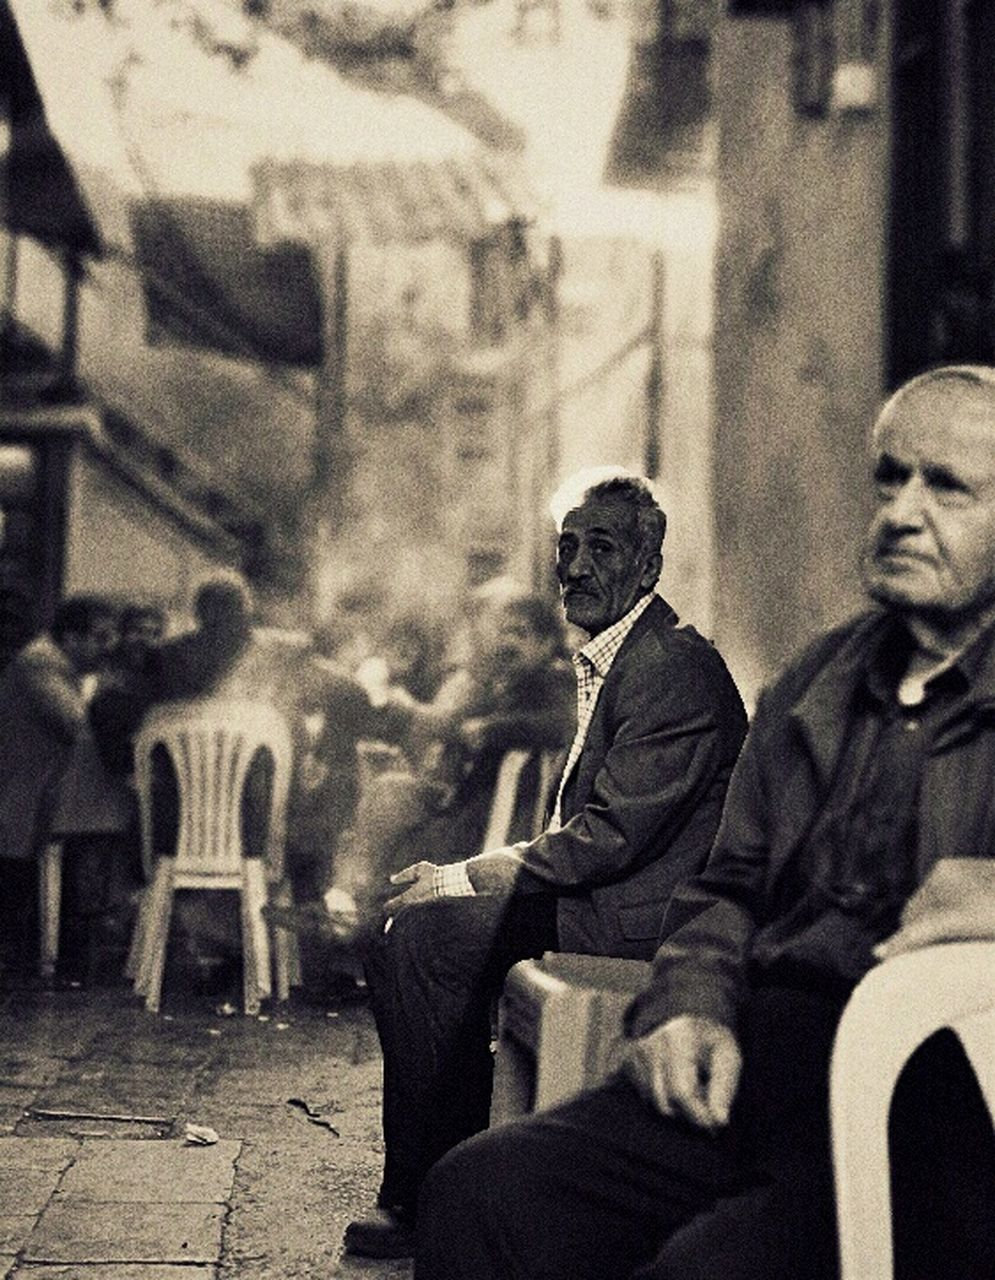 sitting, men, real people, two people, city, adult, outdoors, building exterior, day, people, only men, adults only